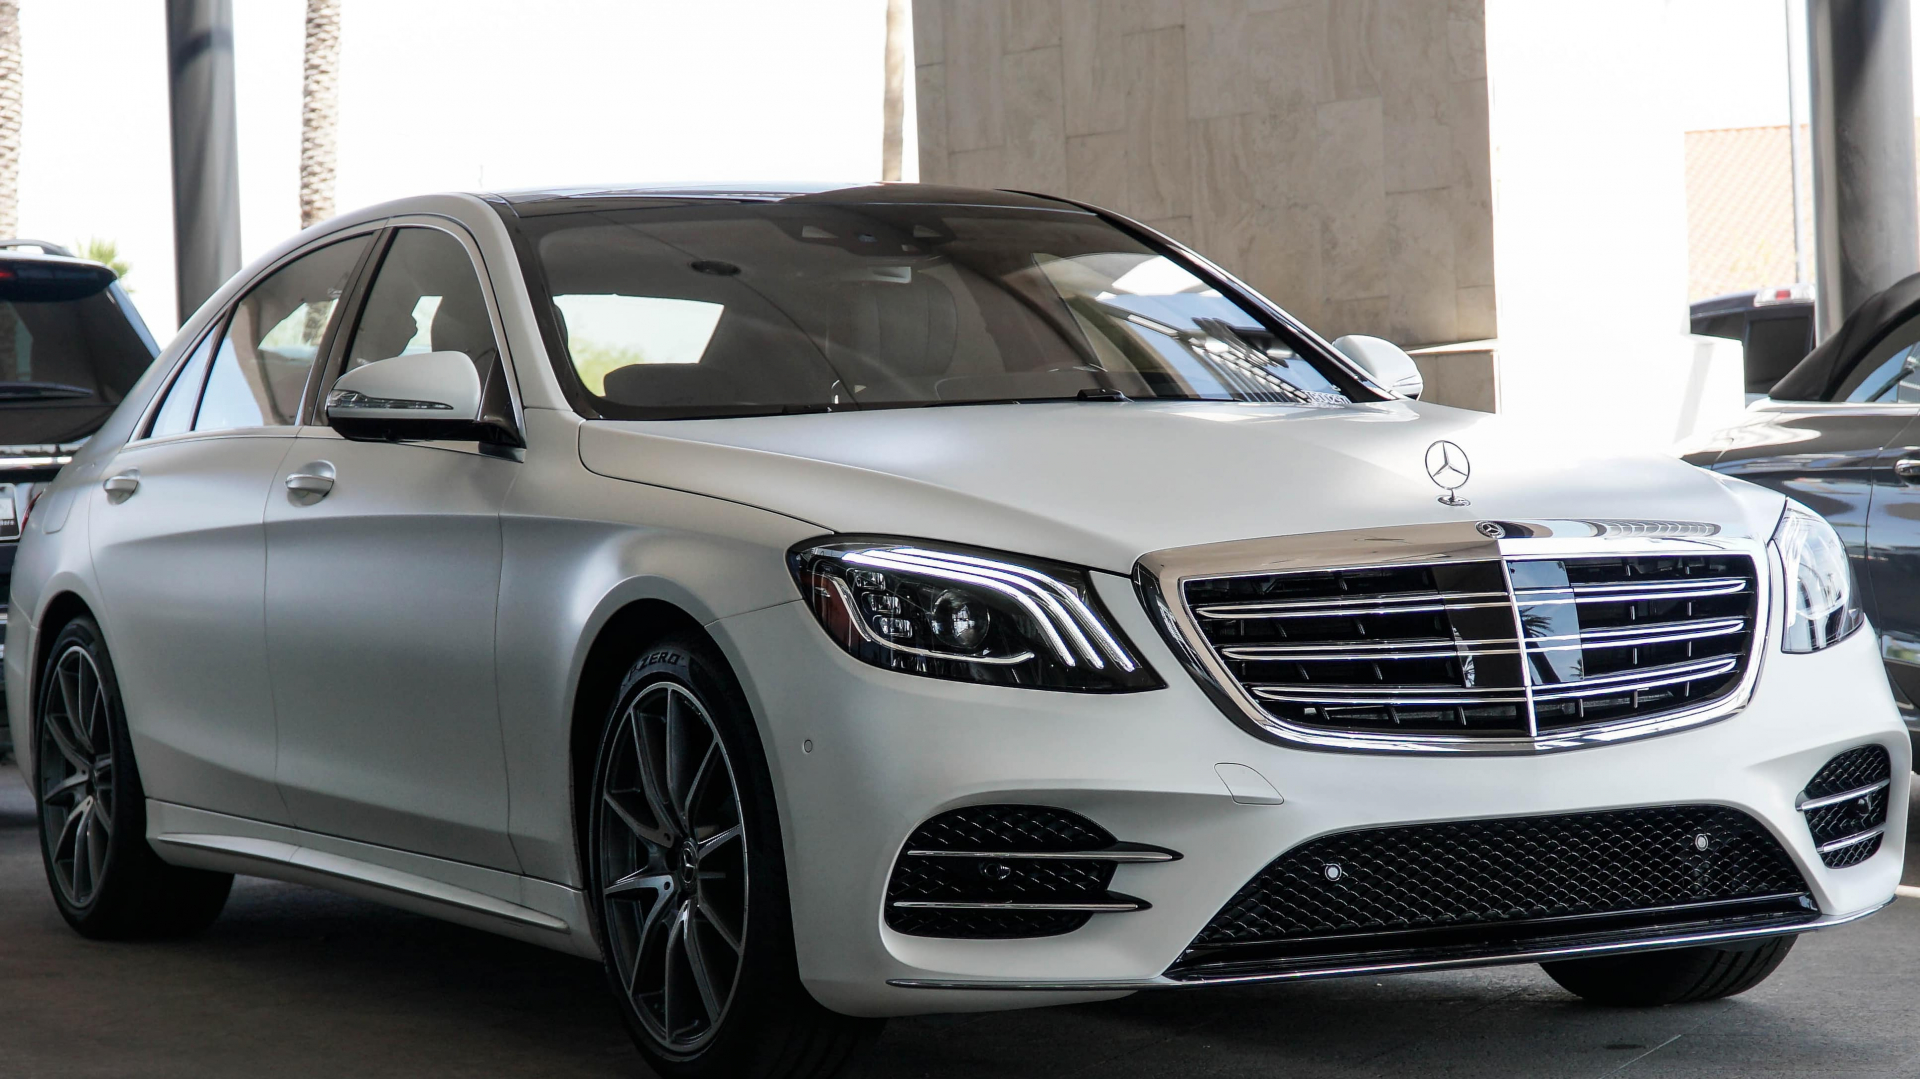 Mercedes S Class 2018 Sedan / Kowloon City District, Hong Kong   / Airport Transfer HKD 1,000.00